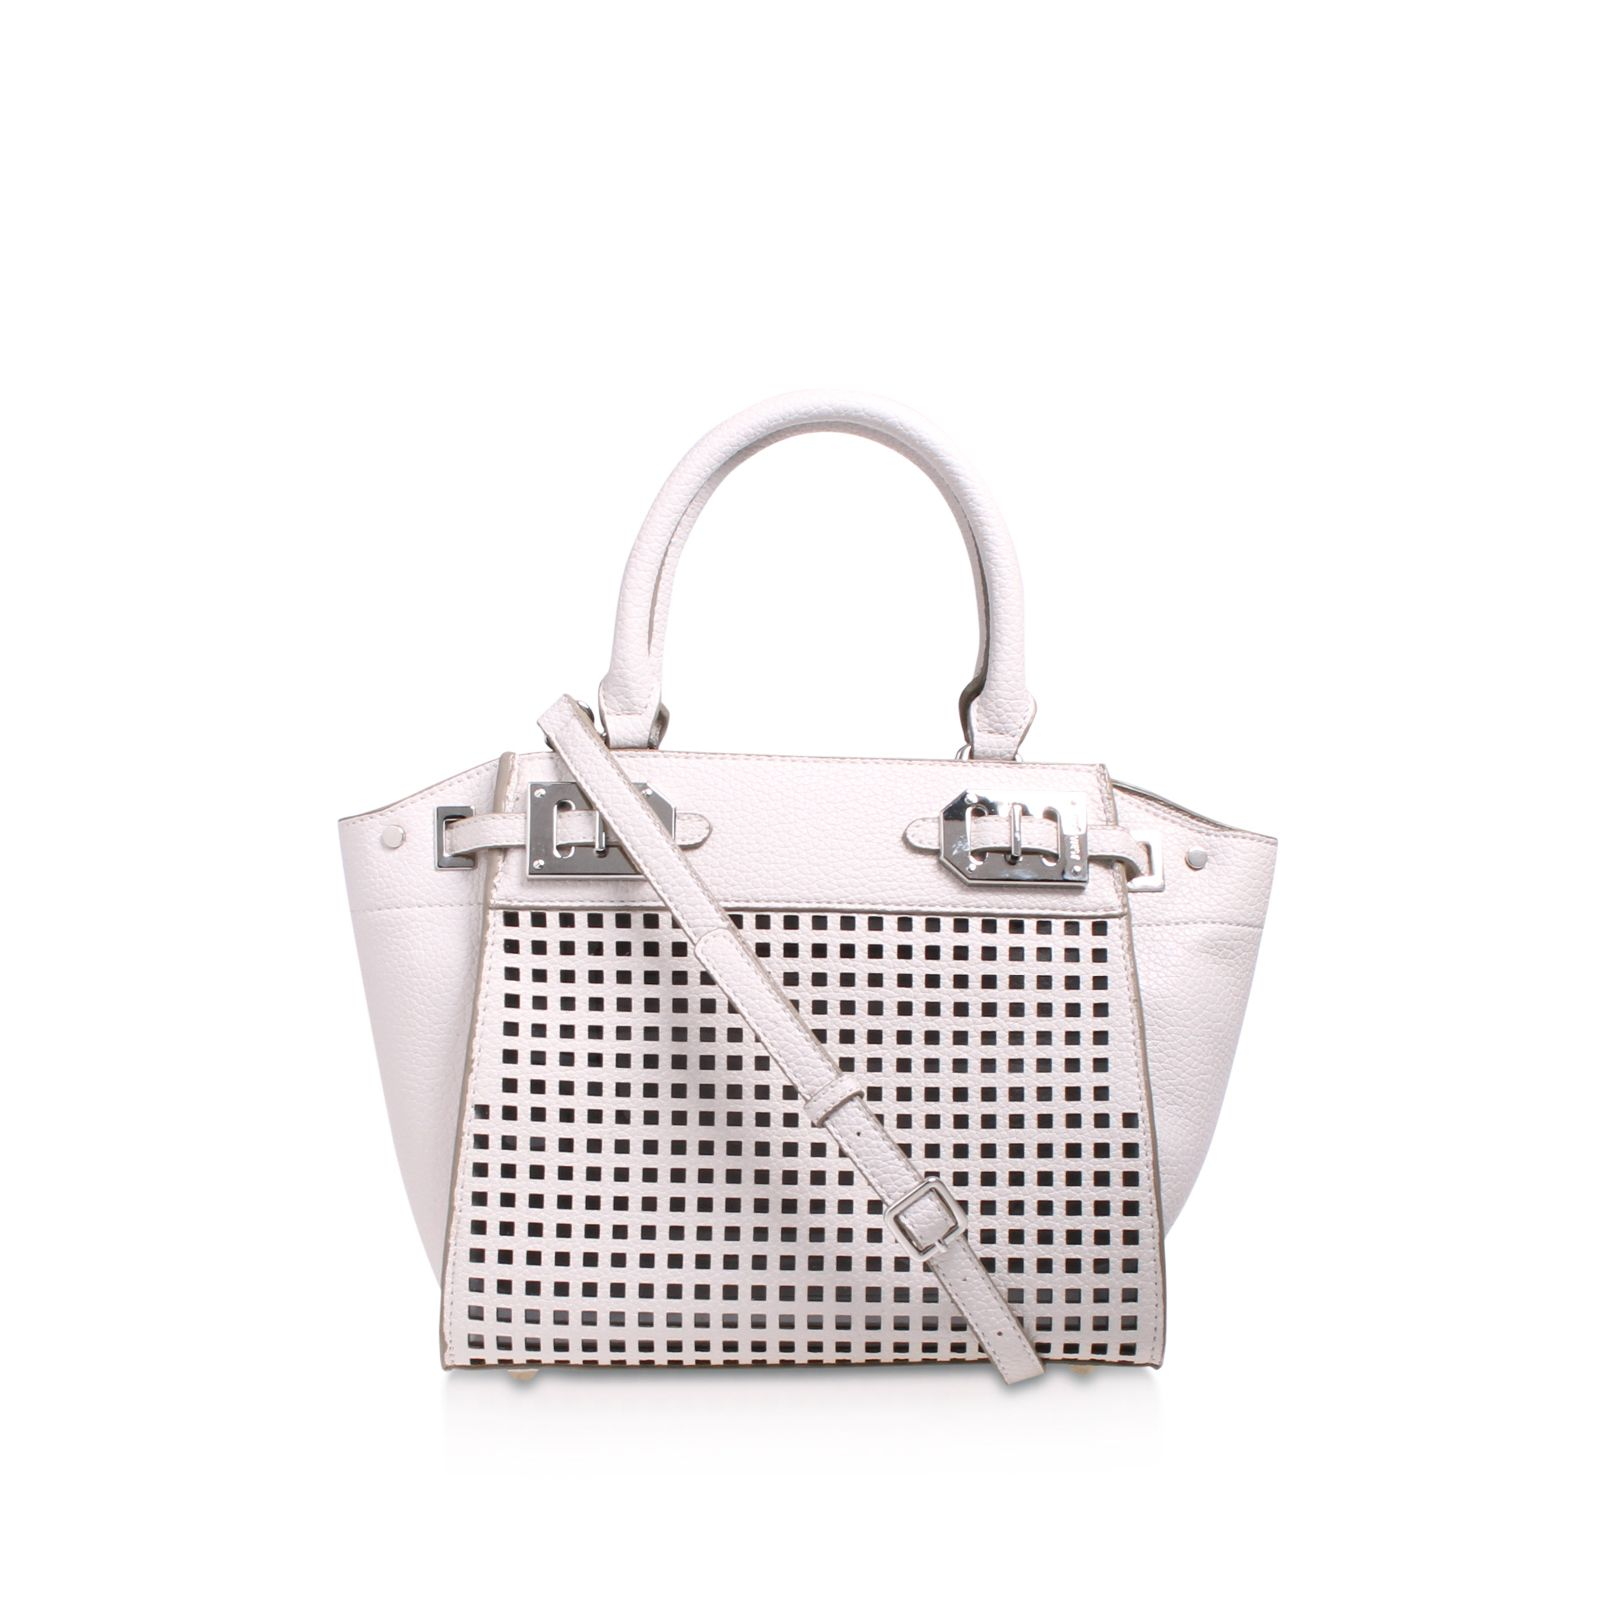 Nine West Nine West Gleam team mini satchel bag, White